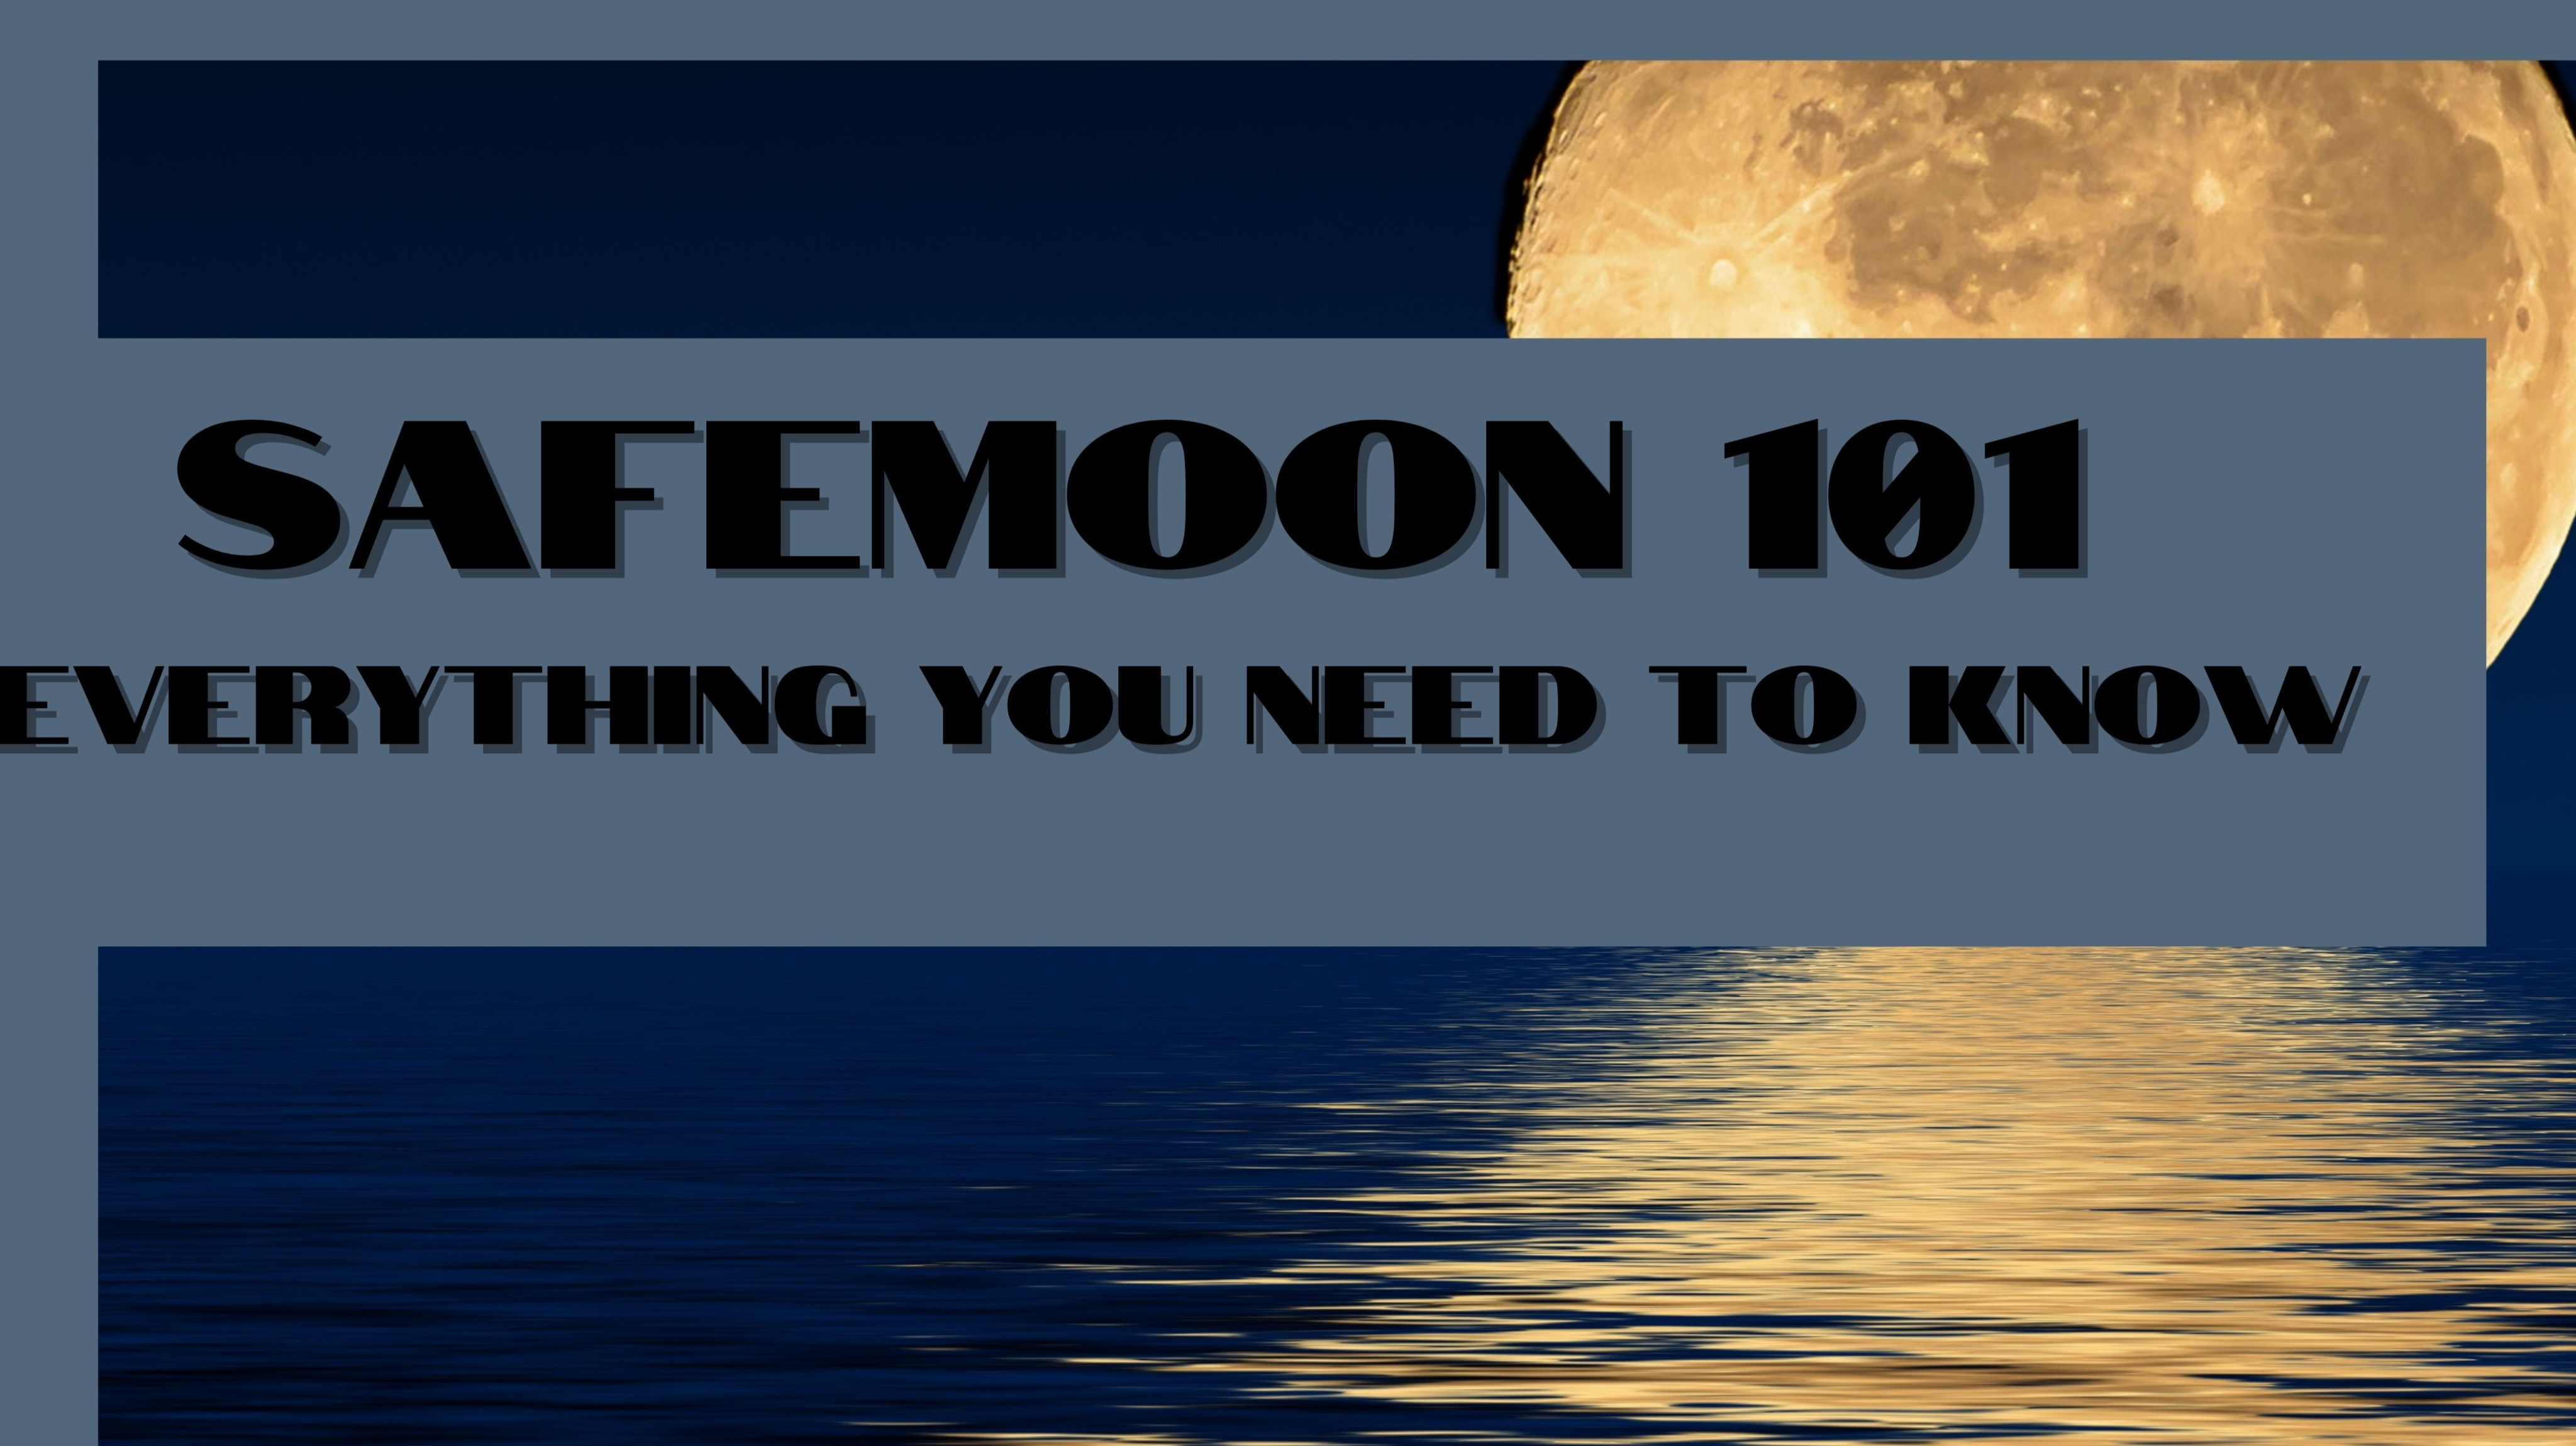 The 101. Everything you need to know safemoon